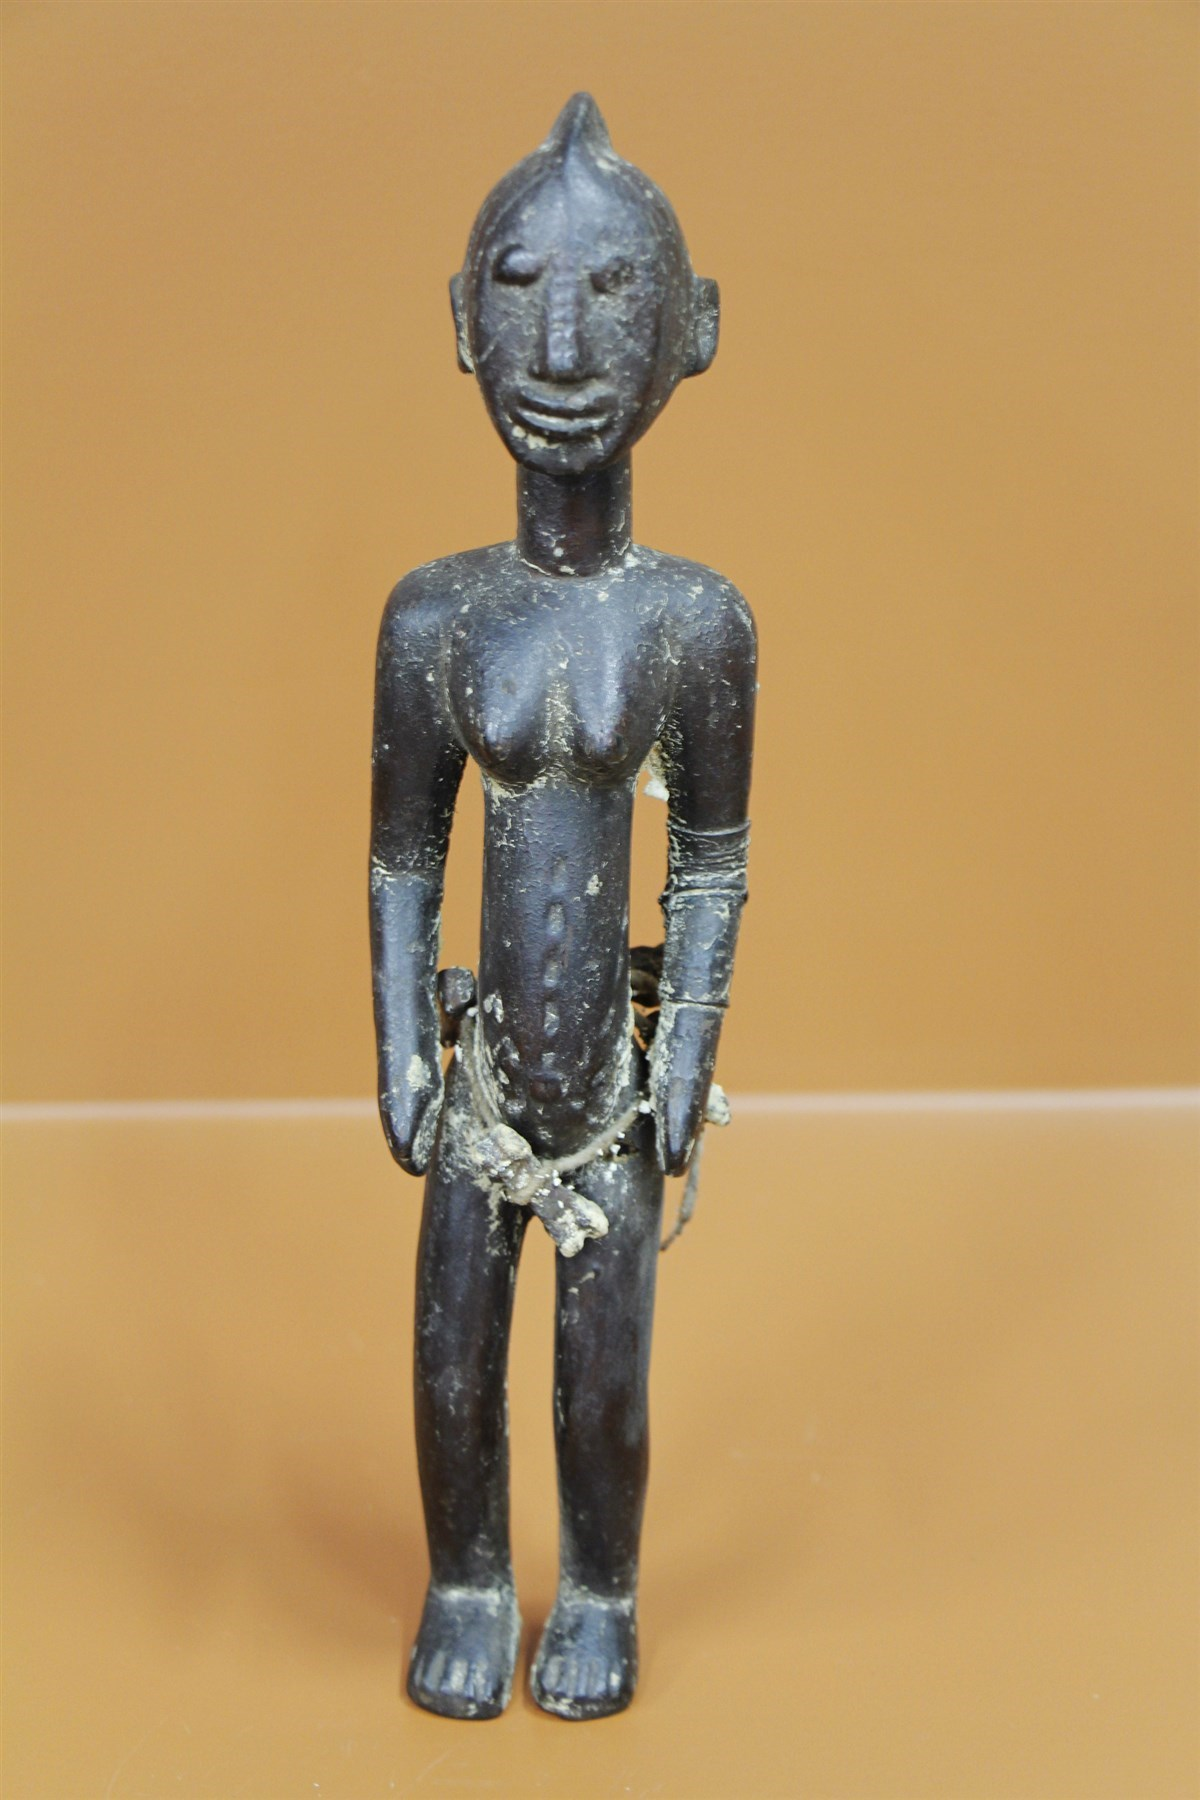 Statue Mossi - Déco africaine - Art africain traditionnel